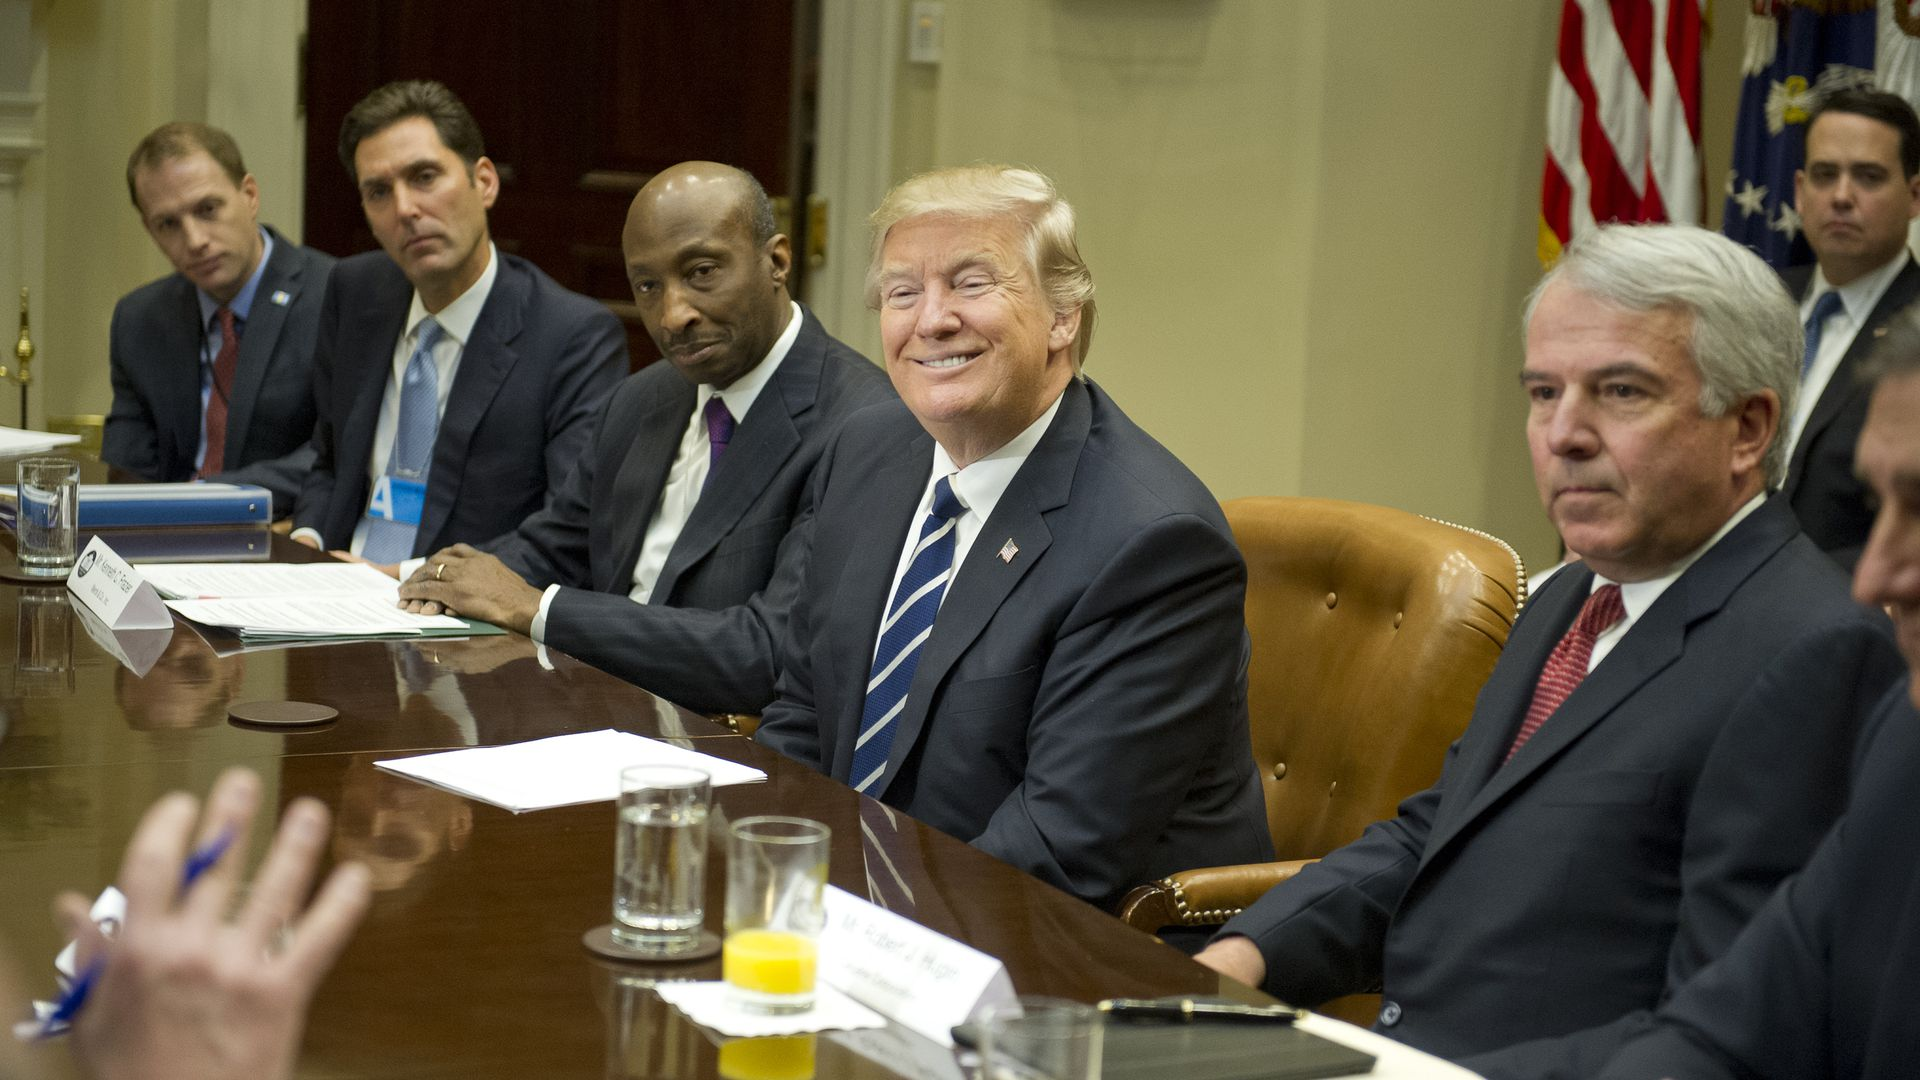 President Trump with representatives of PhRMA